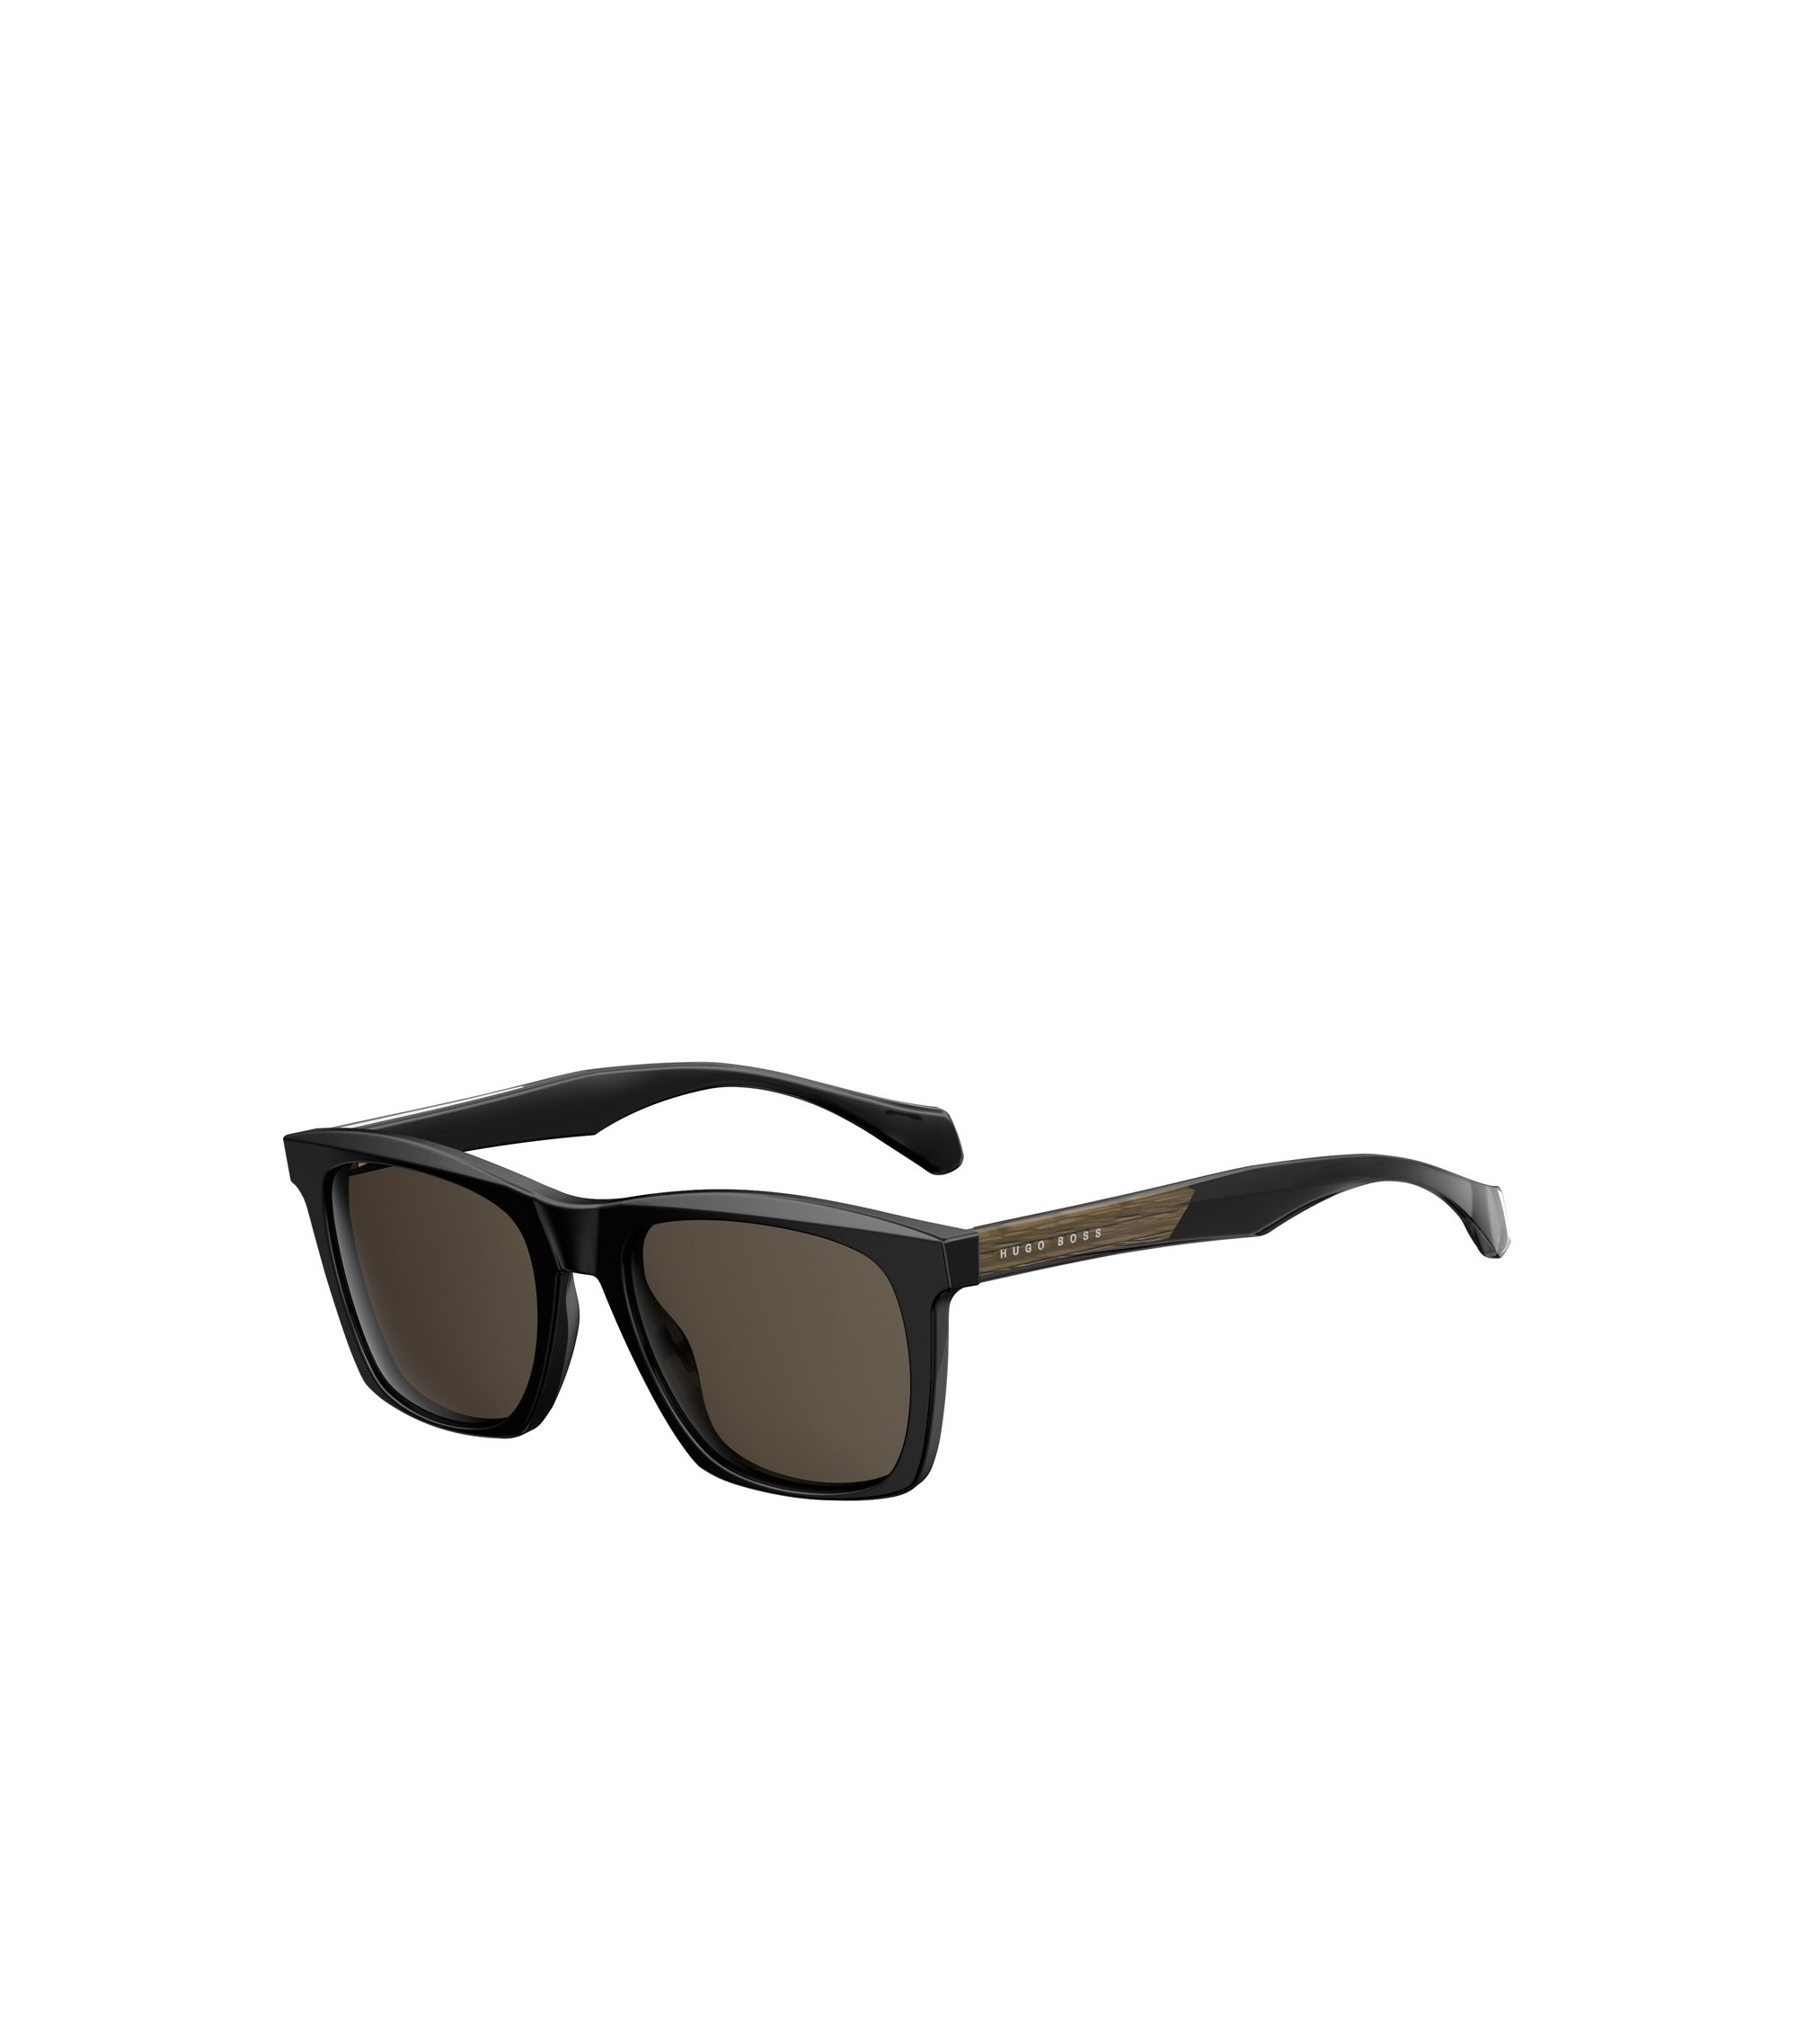 Black Acetate Rectangular Sunglasses | BOSS 0911/S, Assorted-Pre-Pack